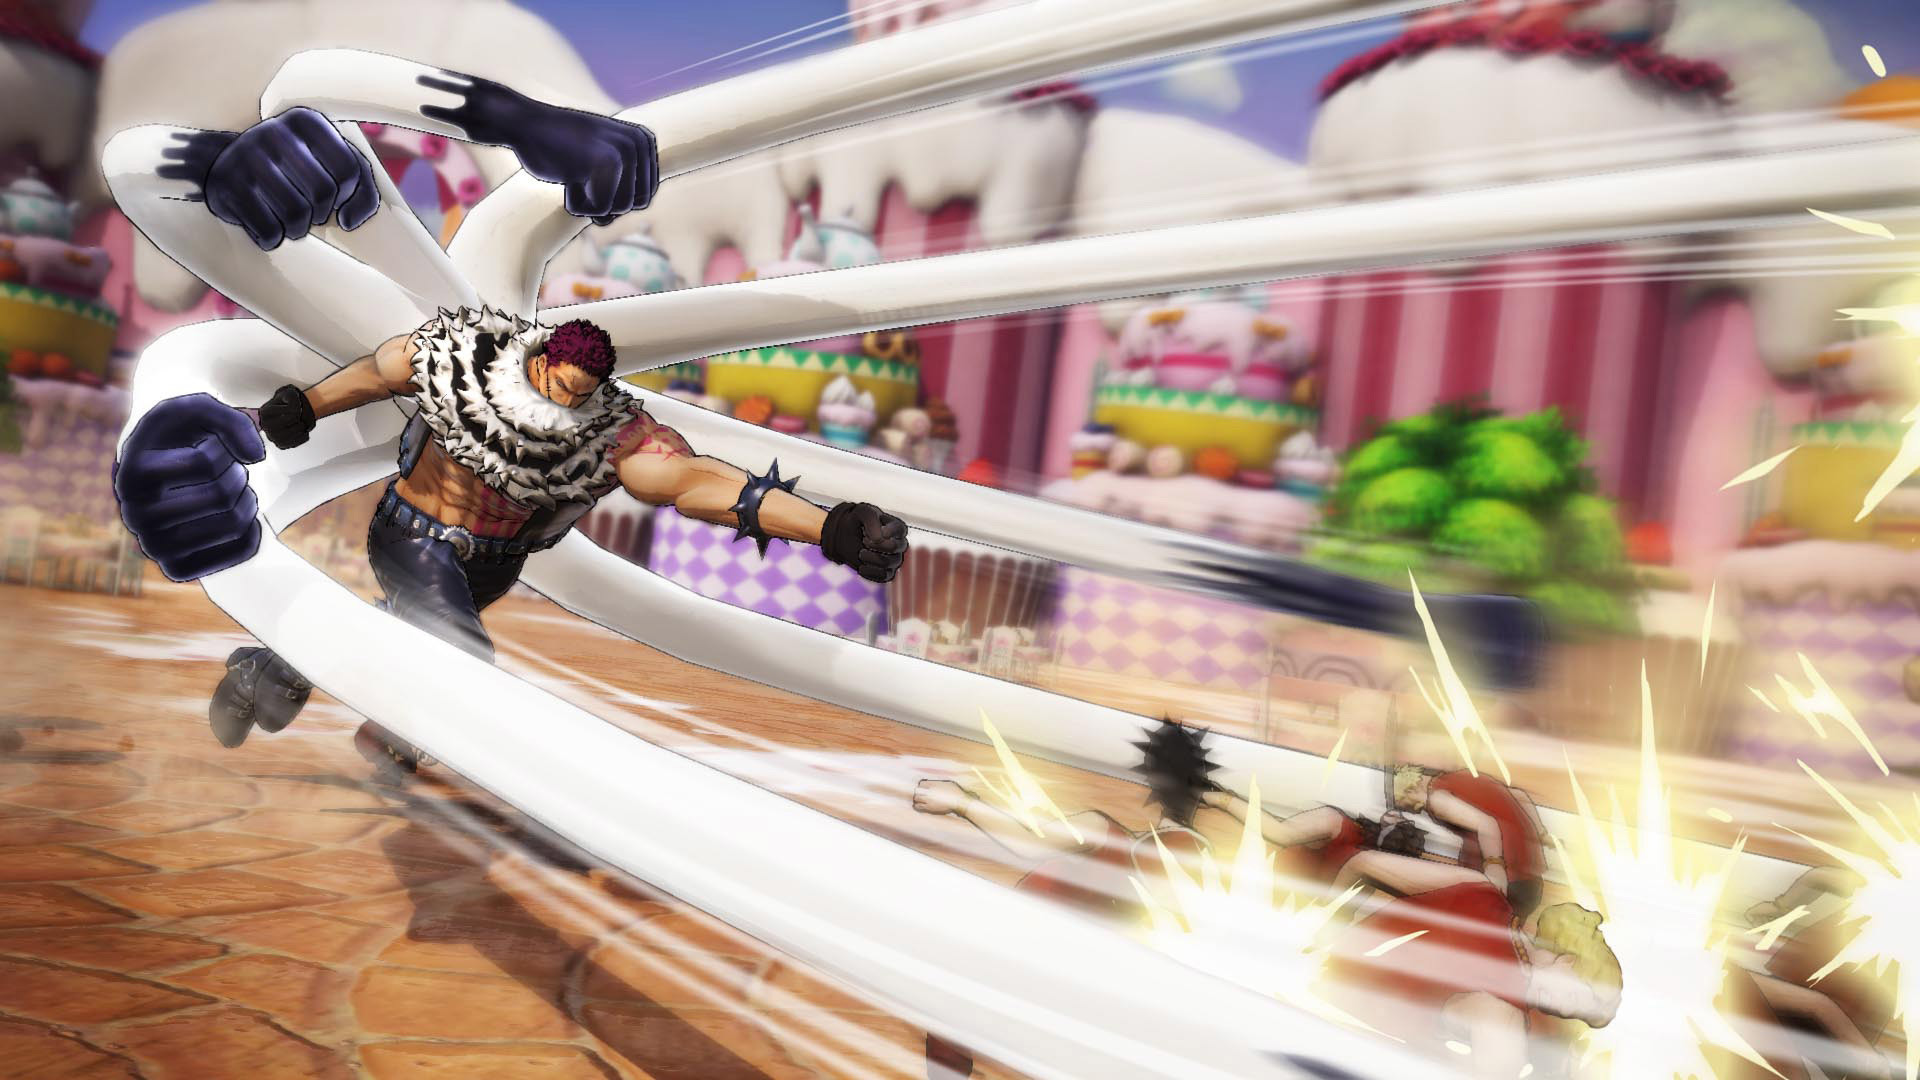 One Piece: Pirate Warriors 4 game screenshot